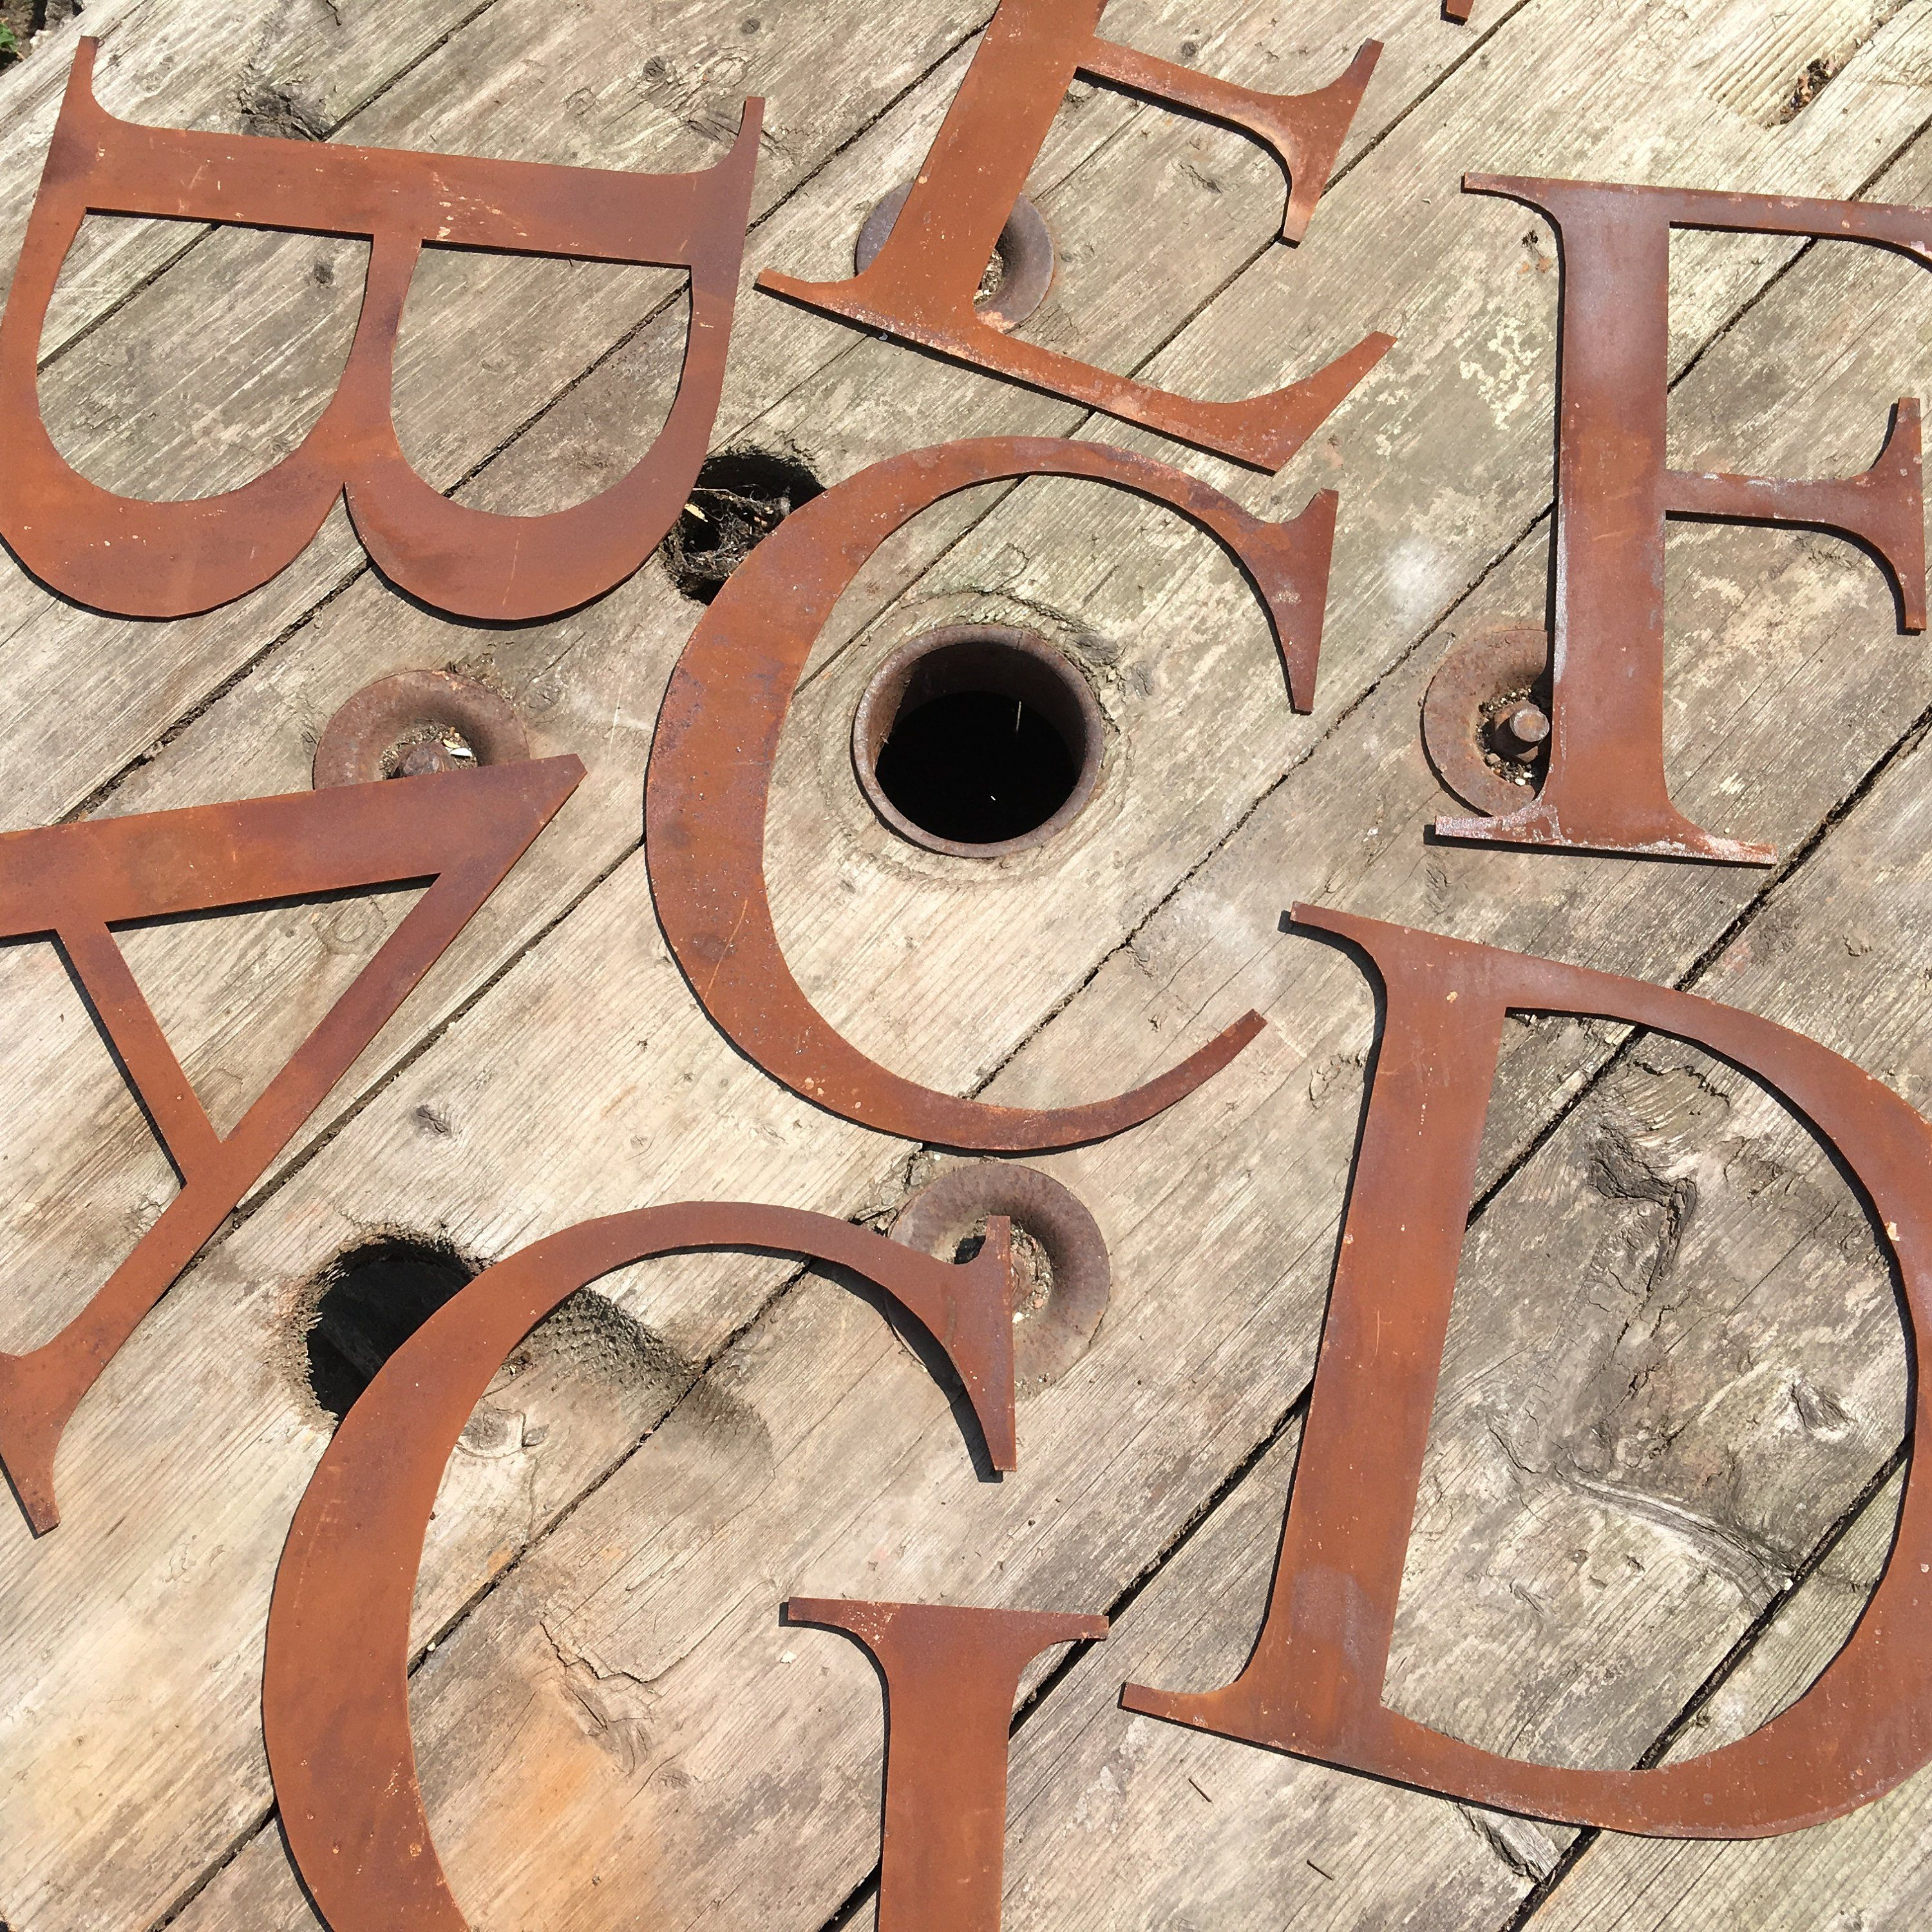 Rusty 5 or 12 thin font metal alphabet letters shop signs, initials, house name, lettering, rusted, industrial, vintage, numbers, garden ,